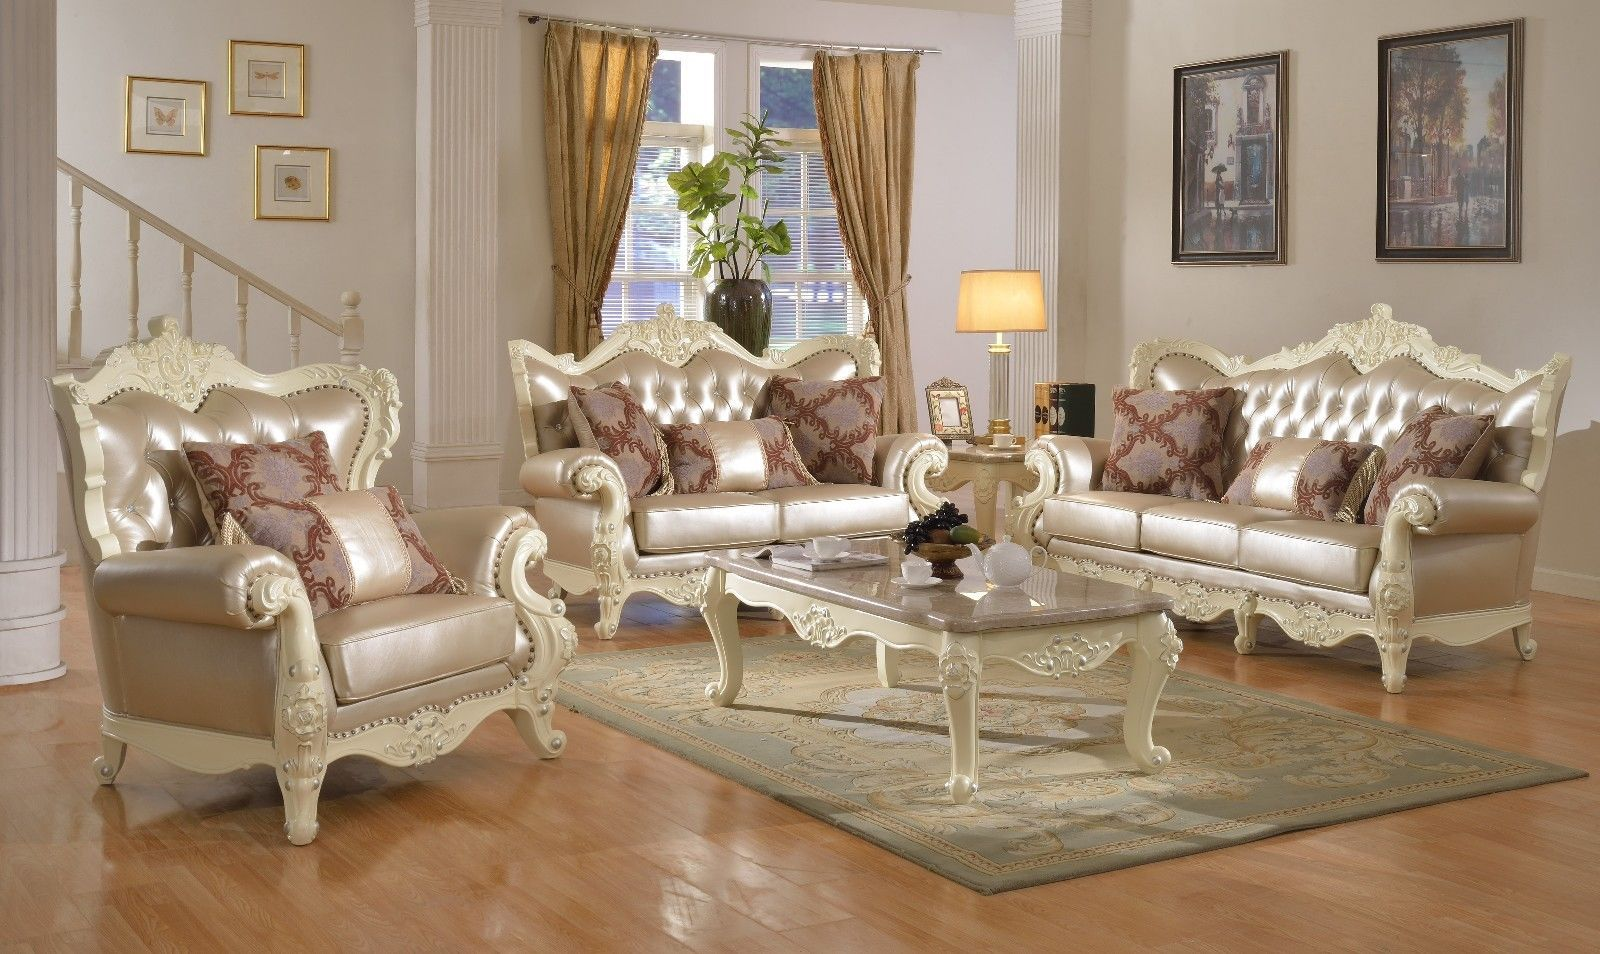 Meridian 674 Bonded Living Room Sofa Set 2pc. Rich Pearl White Traditional Style